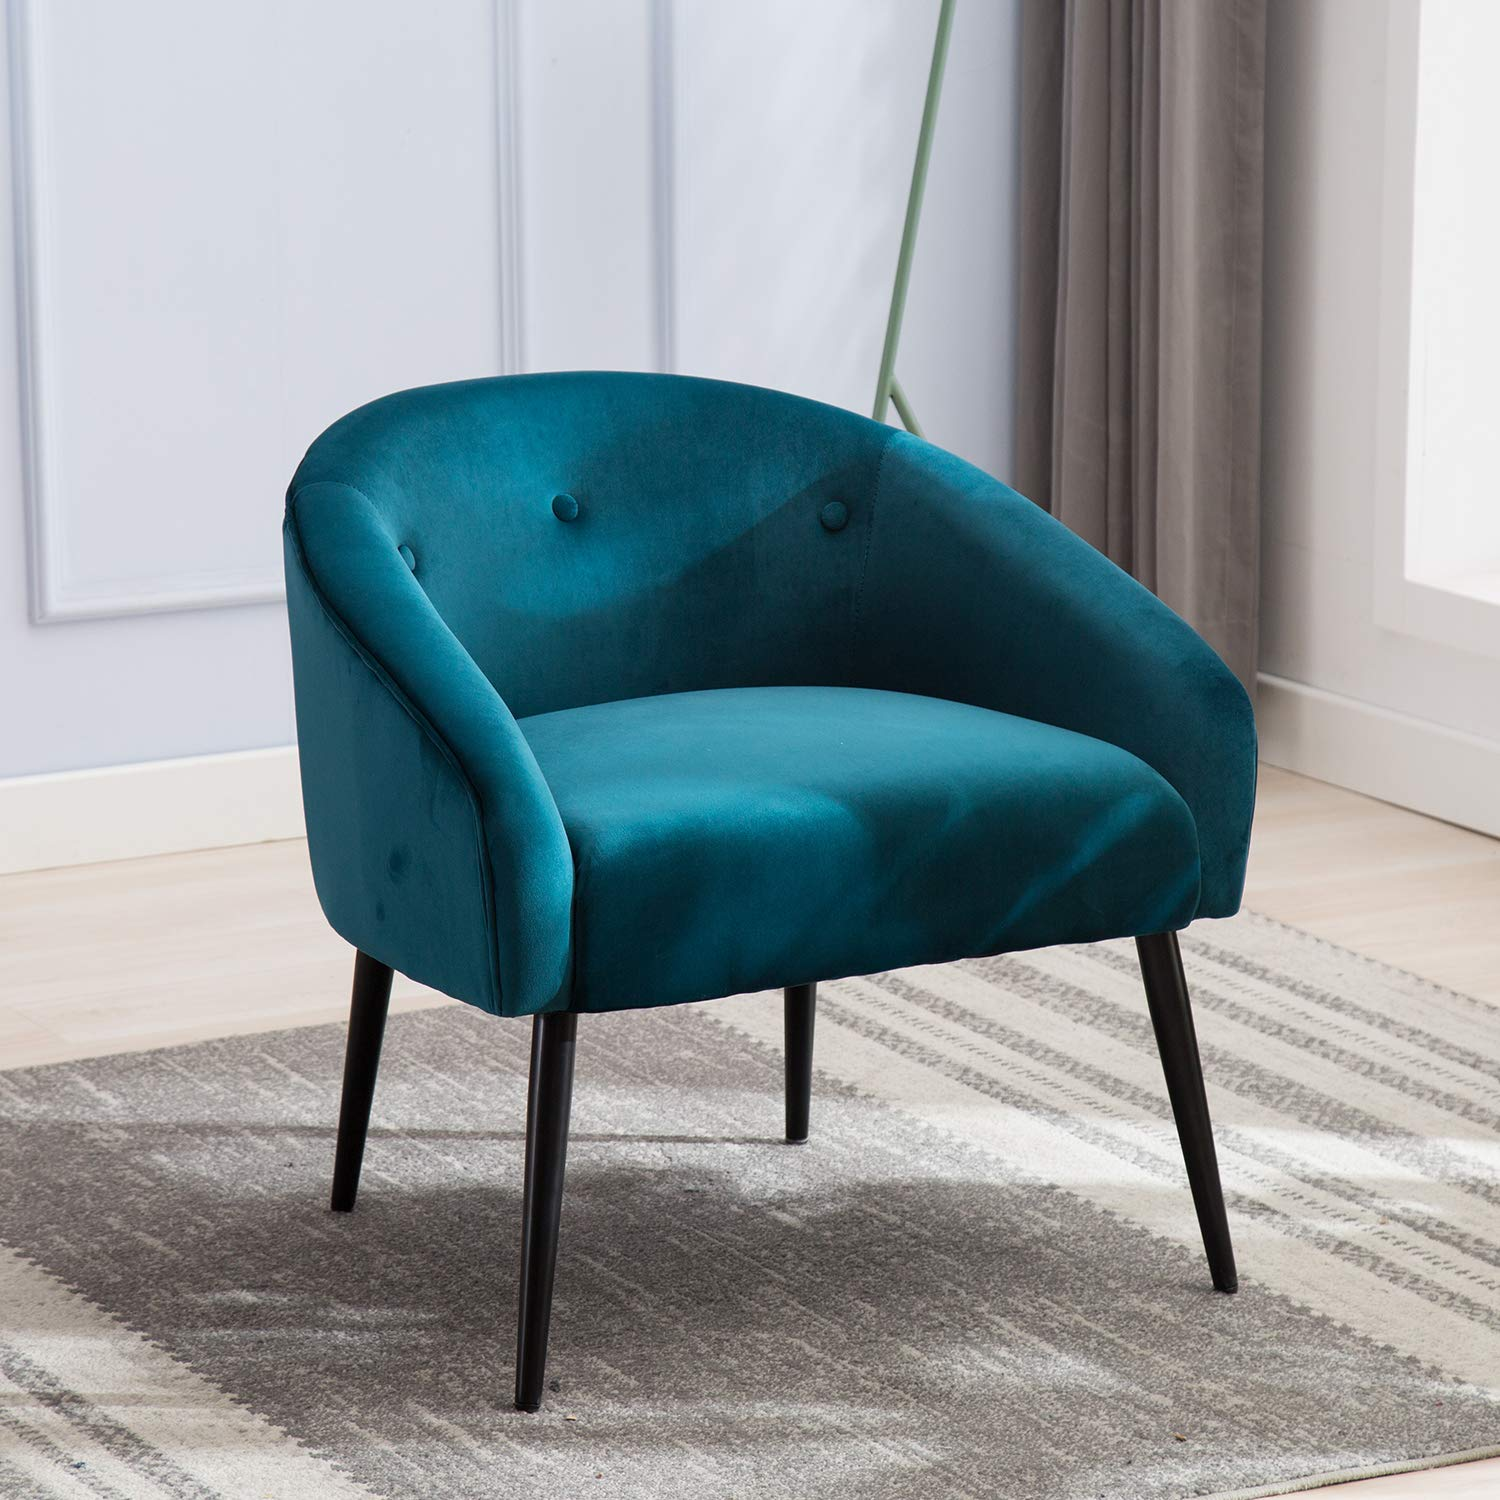 Upholstered Tufted Blue Velvet Accent Chair,JULYFOX Mid Century Modern Accent Arm Chair 330LB Heavy Duty 22 inch Extra Wide Seat 6 inch Thick Padded Club Side Tub Chair for Living Room Bedroom Office by JULYFOX